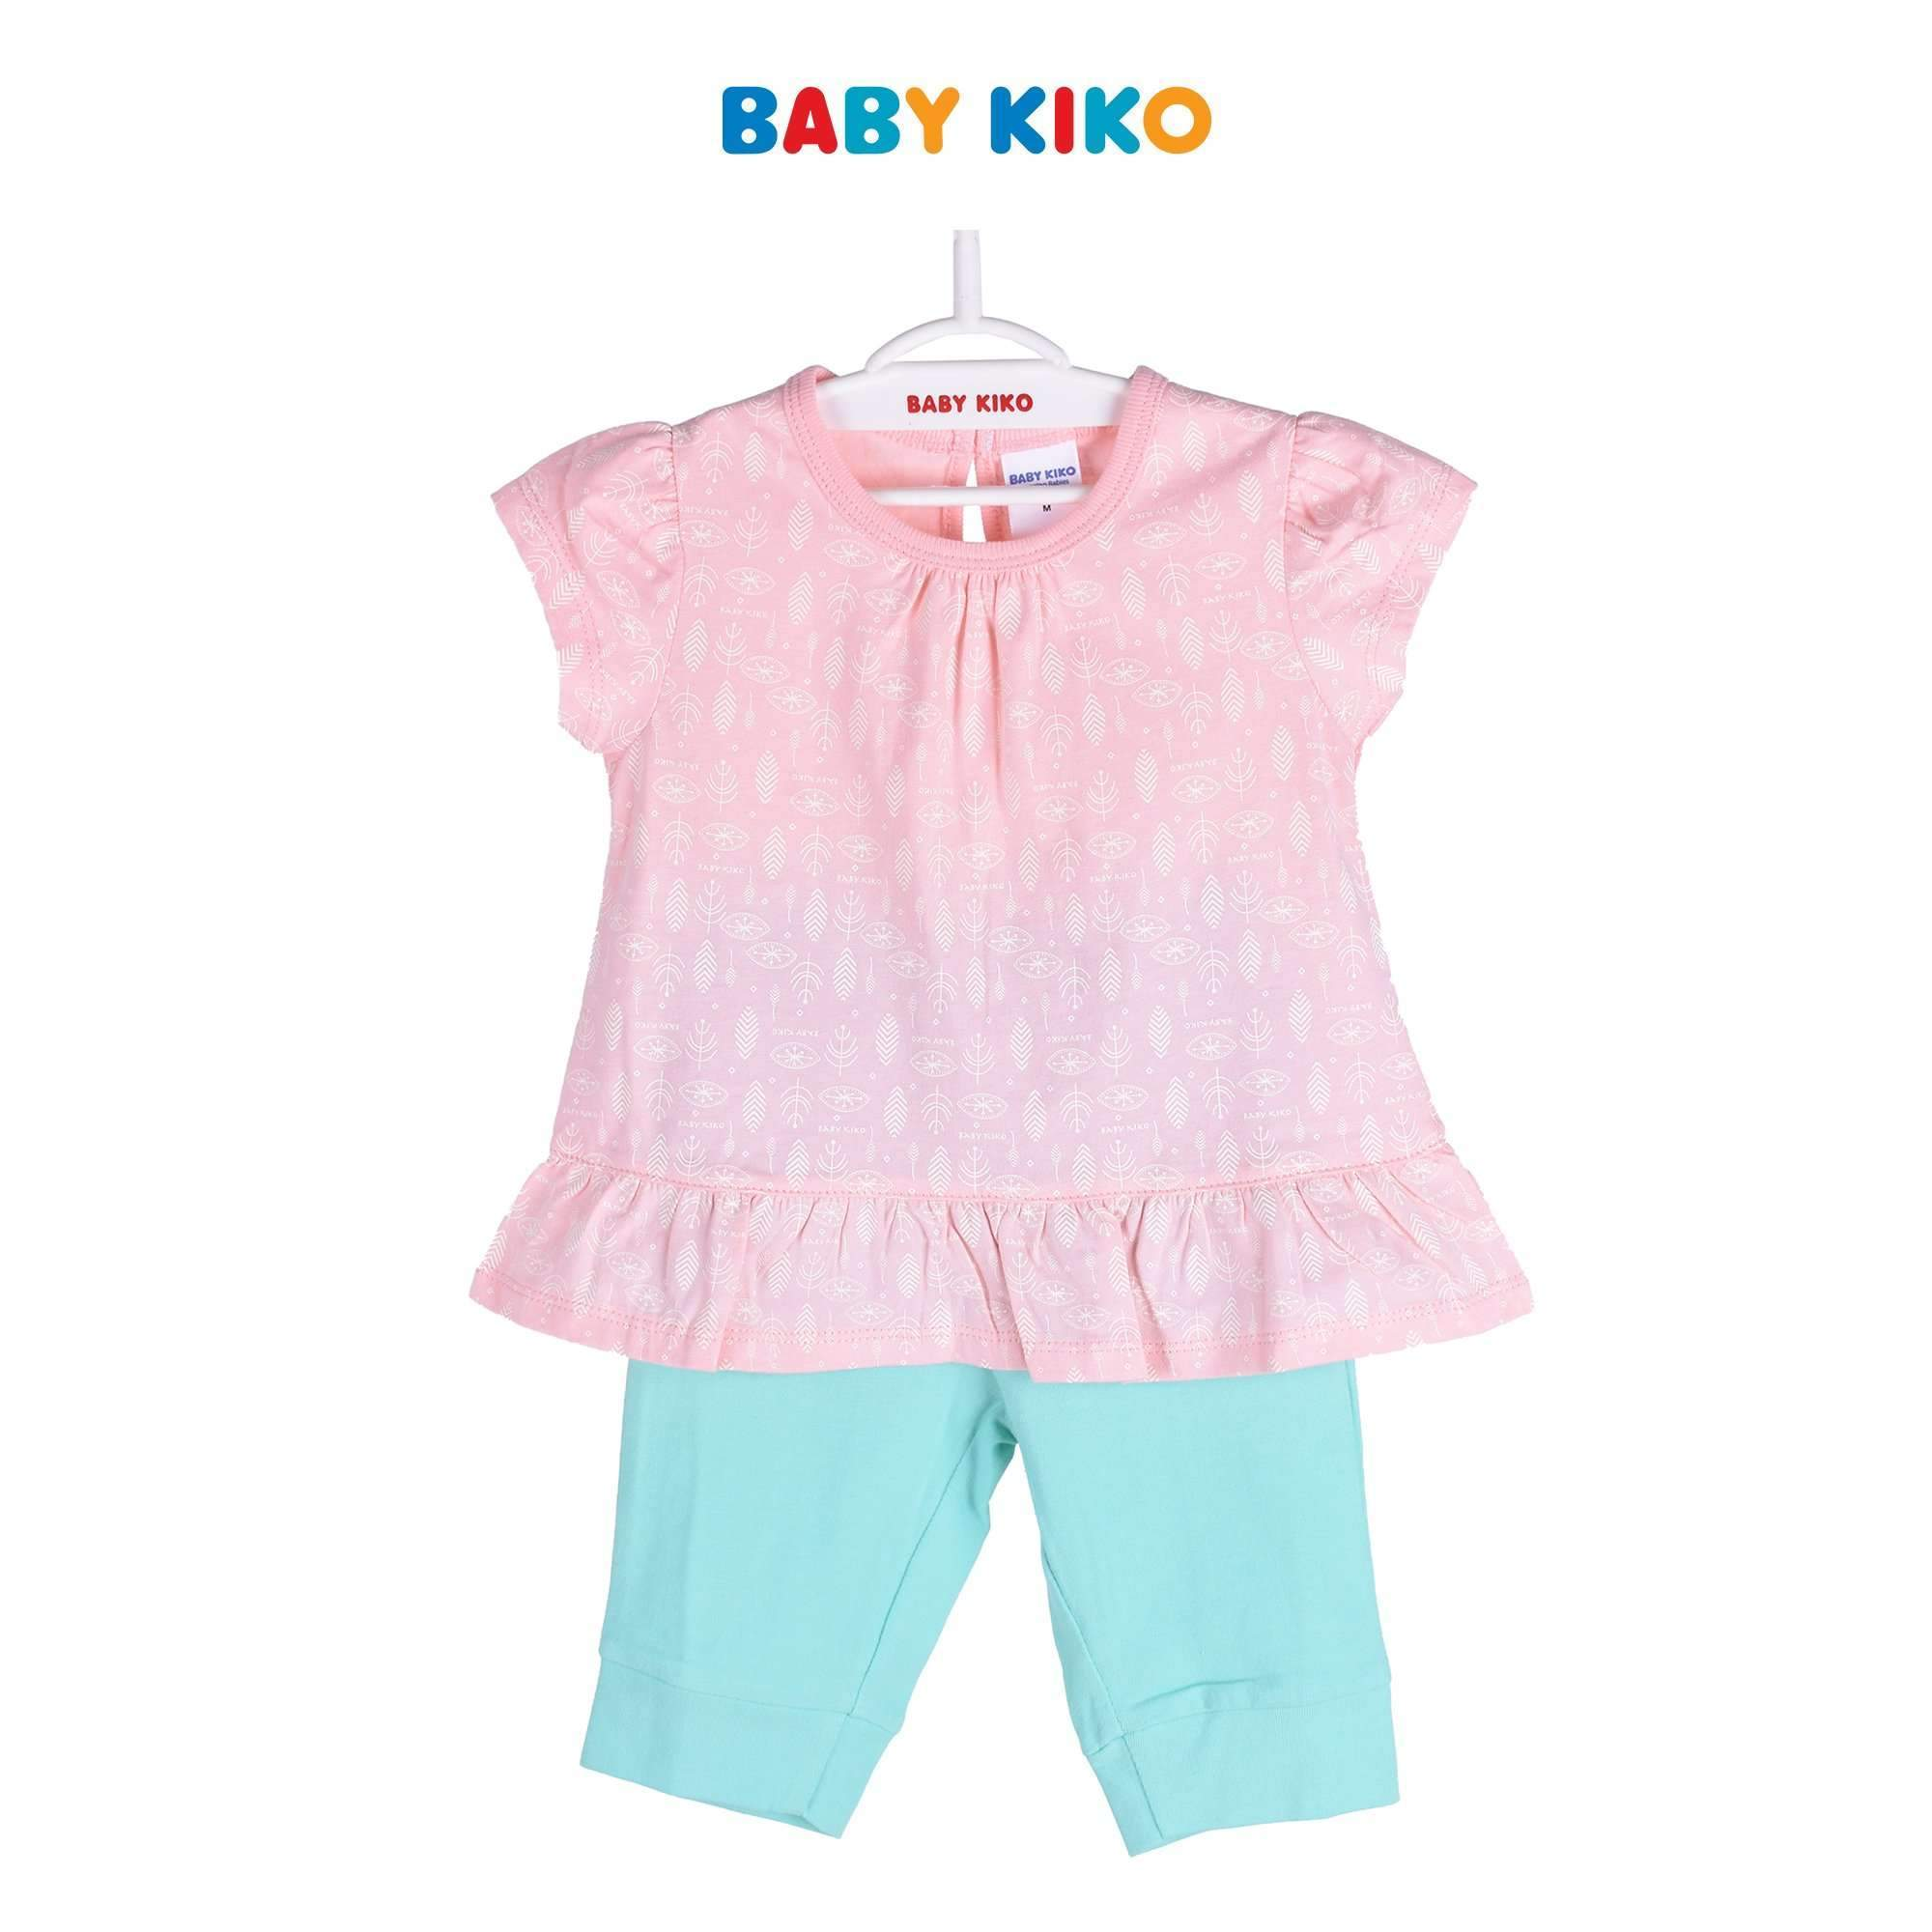 Baby KIKO Toddler Girl Short Sleeve Legging Suit - Pink 325109-411 : Buy Baby KIKO online at CMG.MY